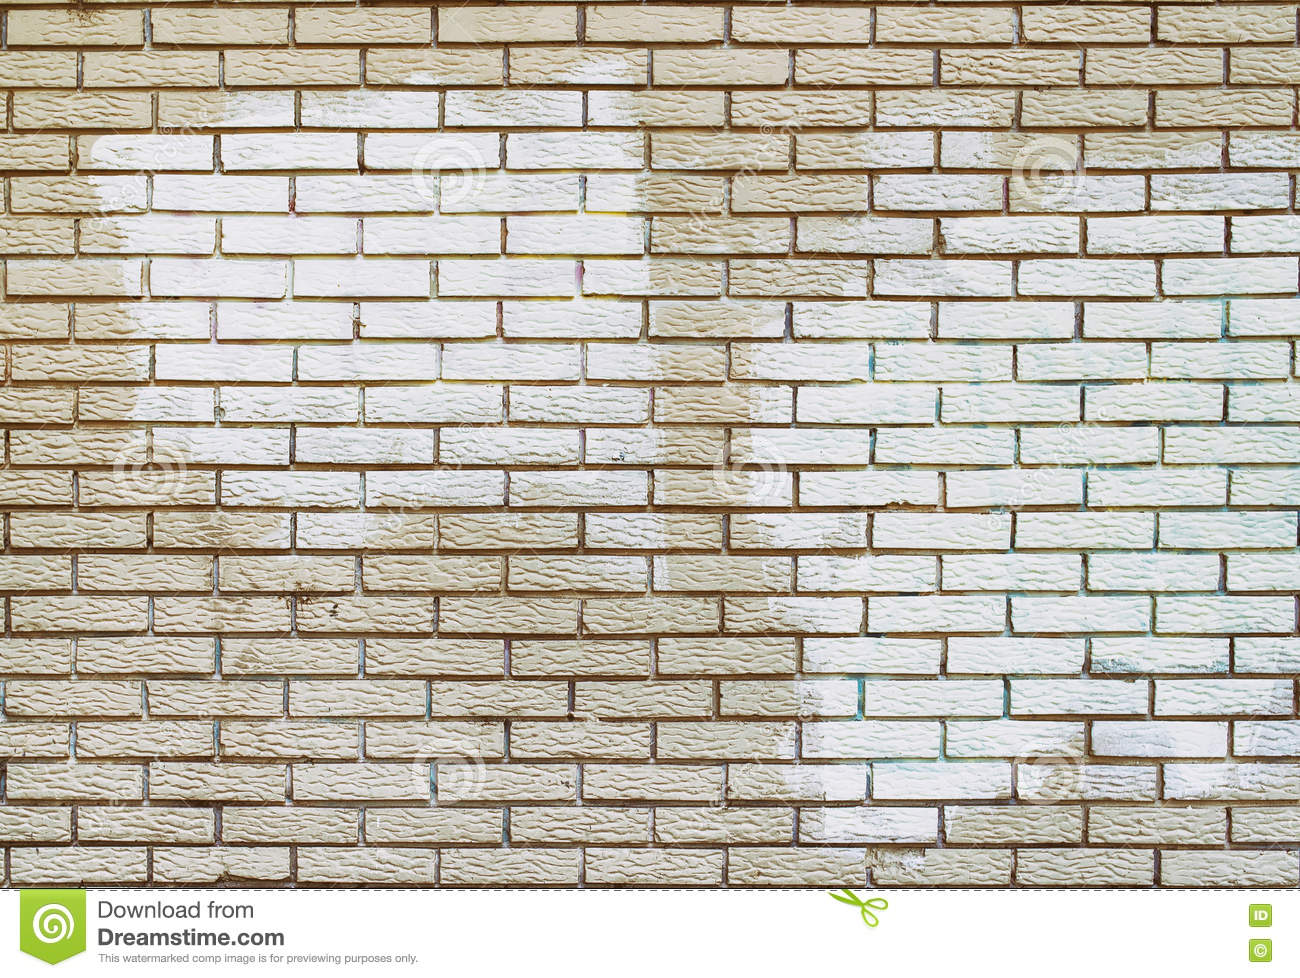 Graffiti Removal With White Paint Over Covering On Brick Wall Stock Image Image 71165075